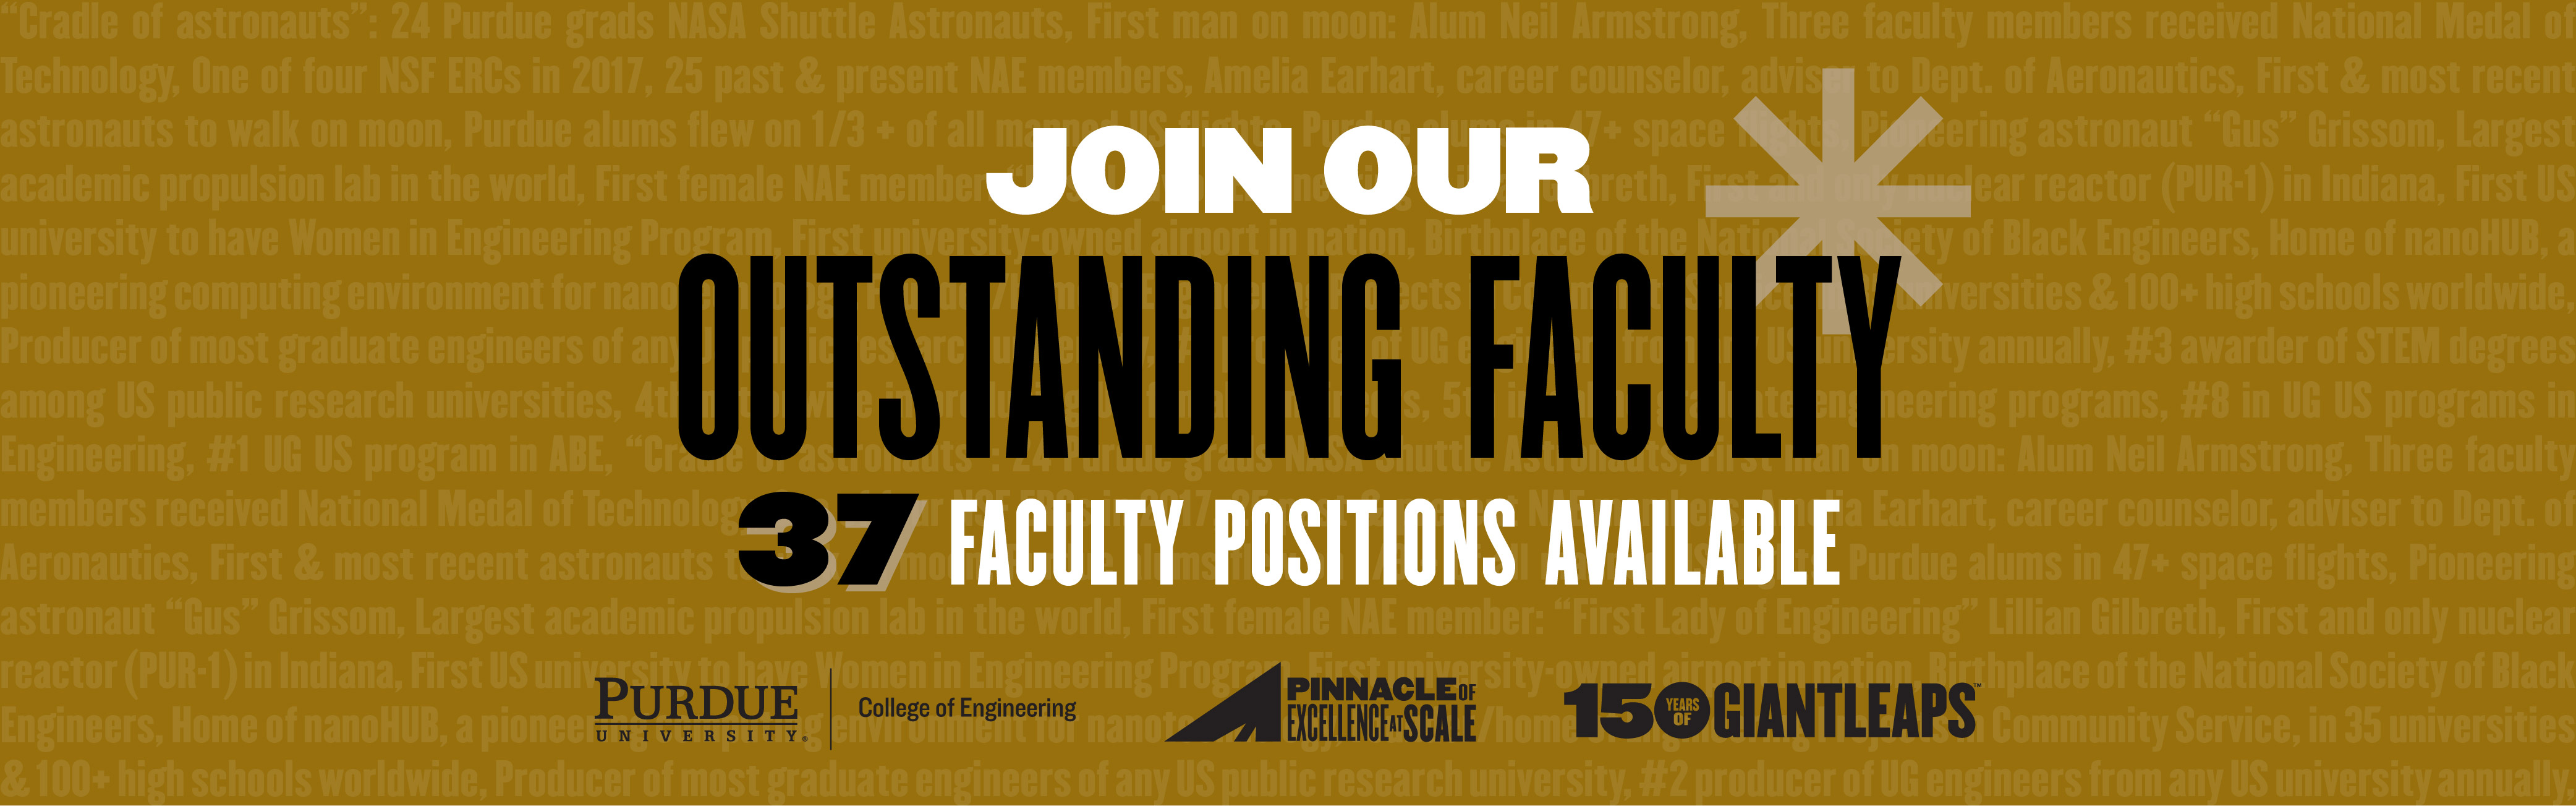 Join our outstanding faculty; 37 faculty positions available.